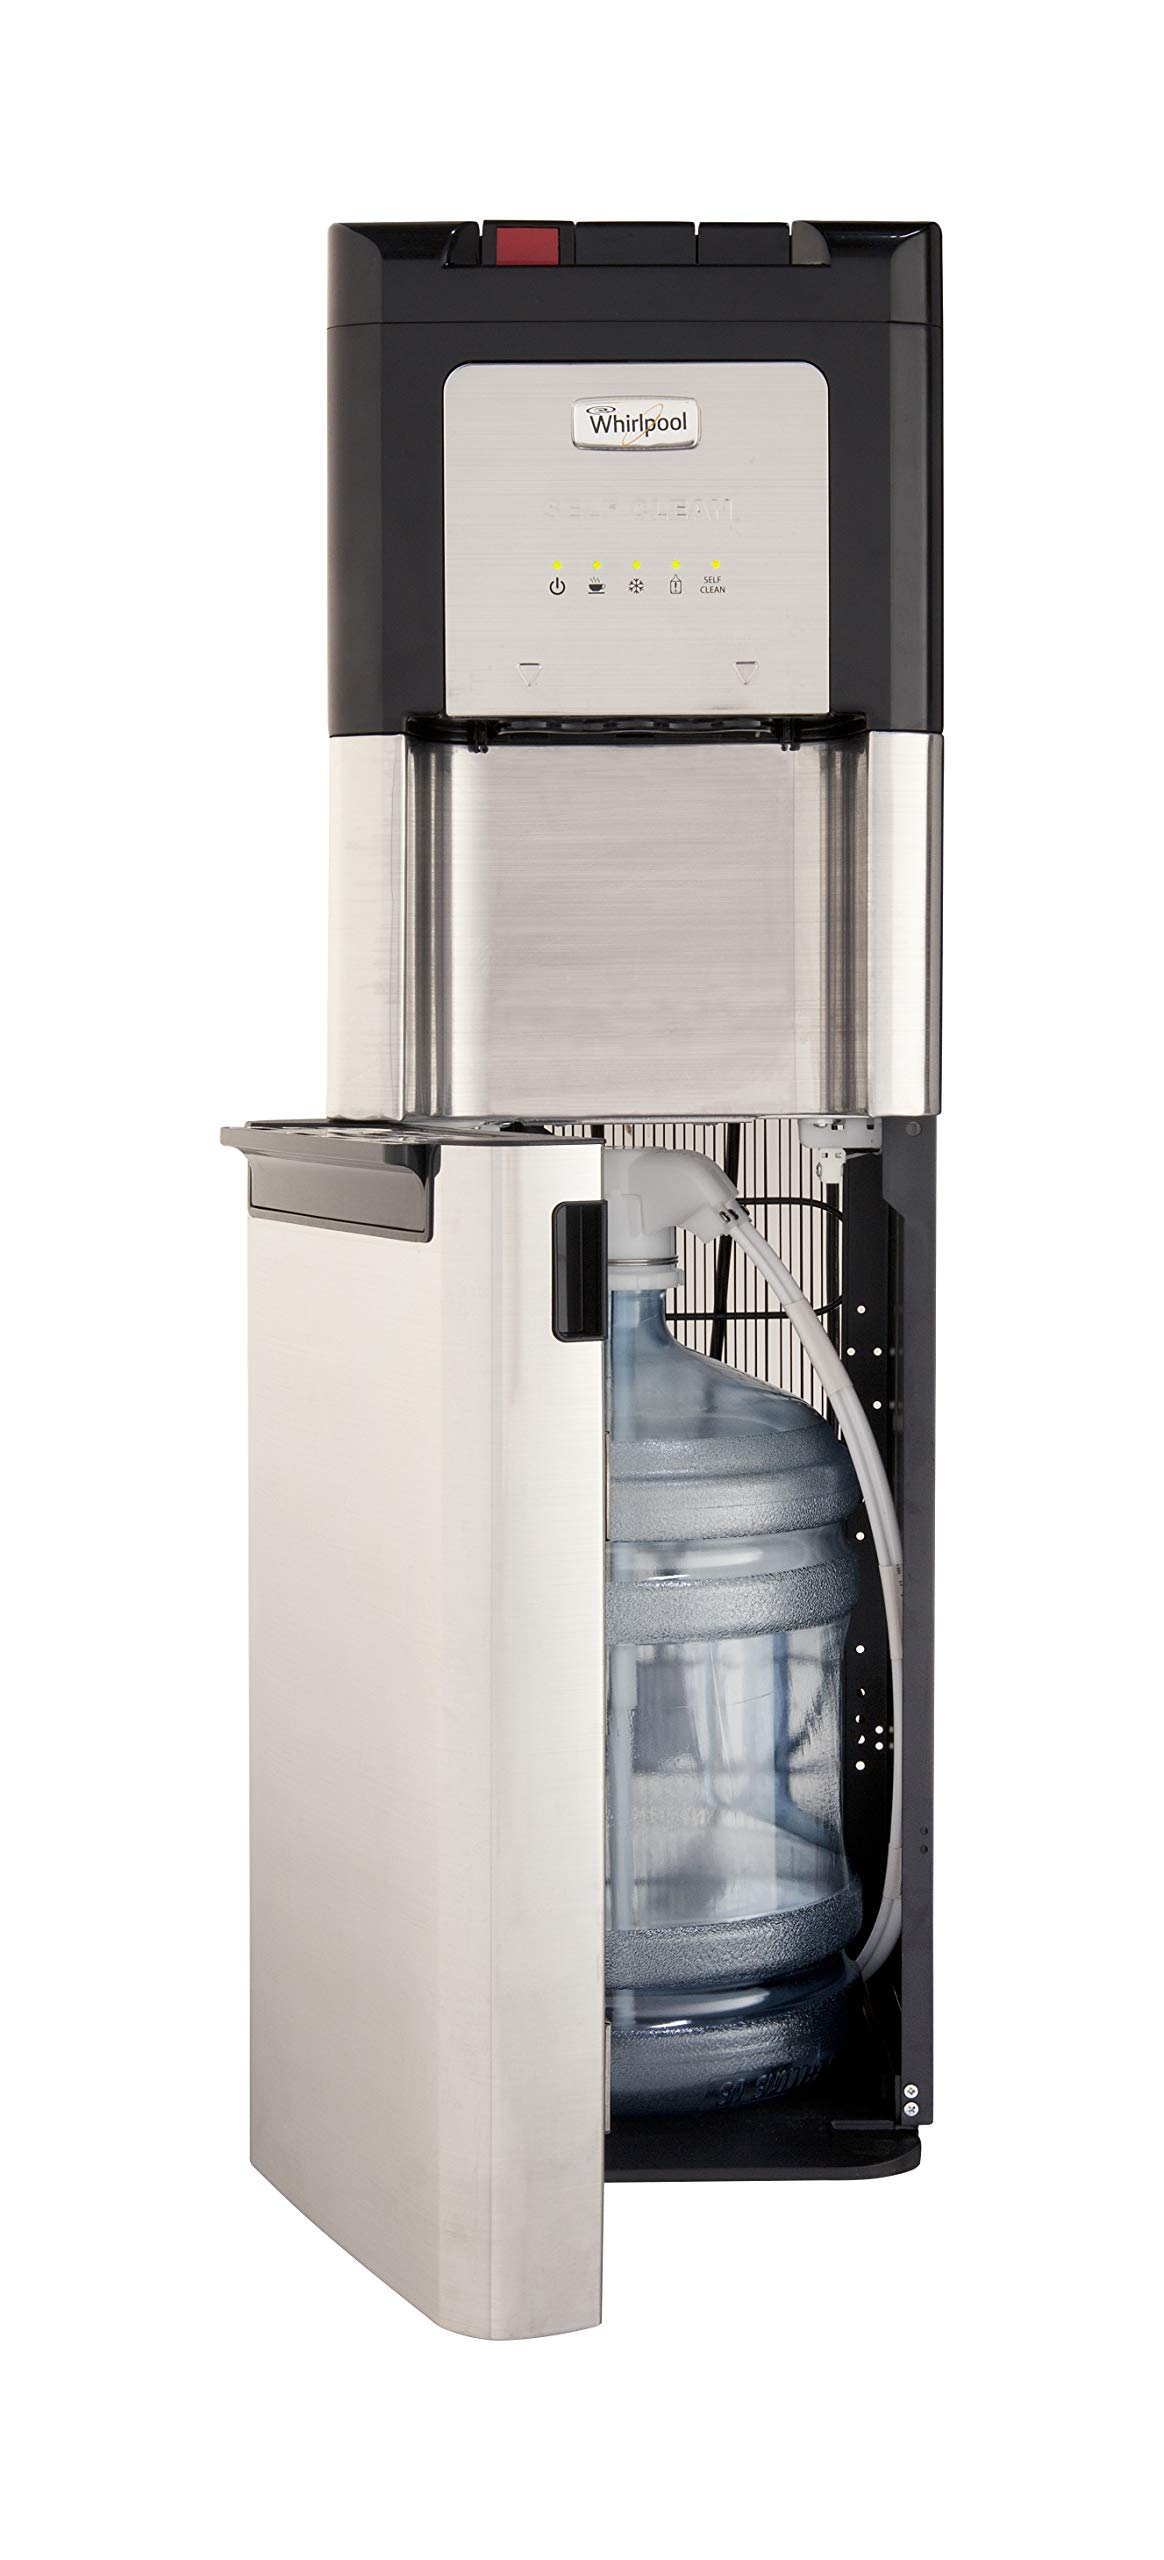 Whirlpool Self Cleaning Water Cooler Eco Water Filtration